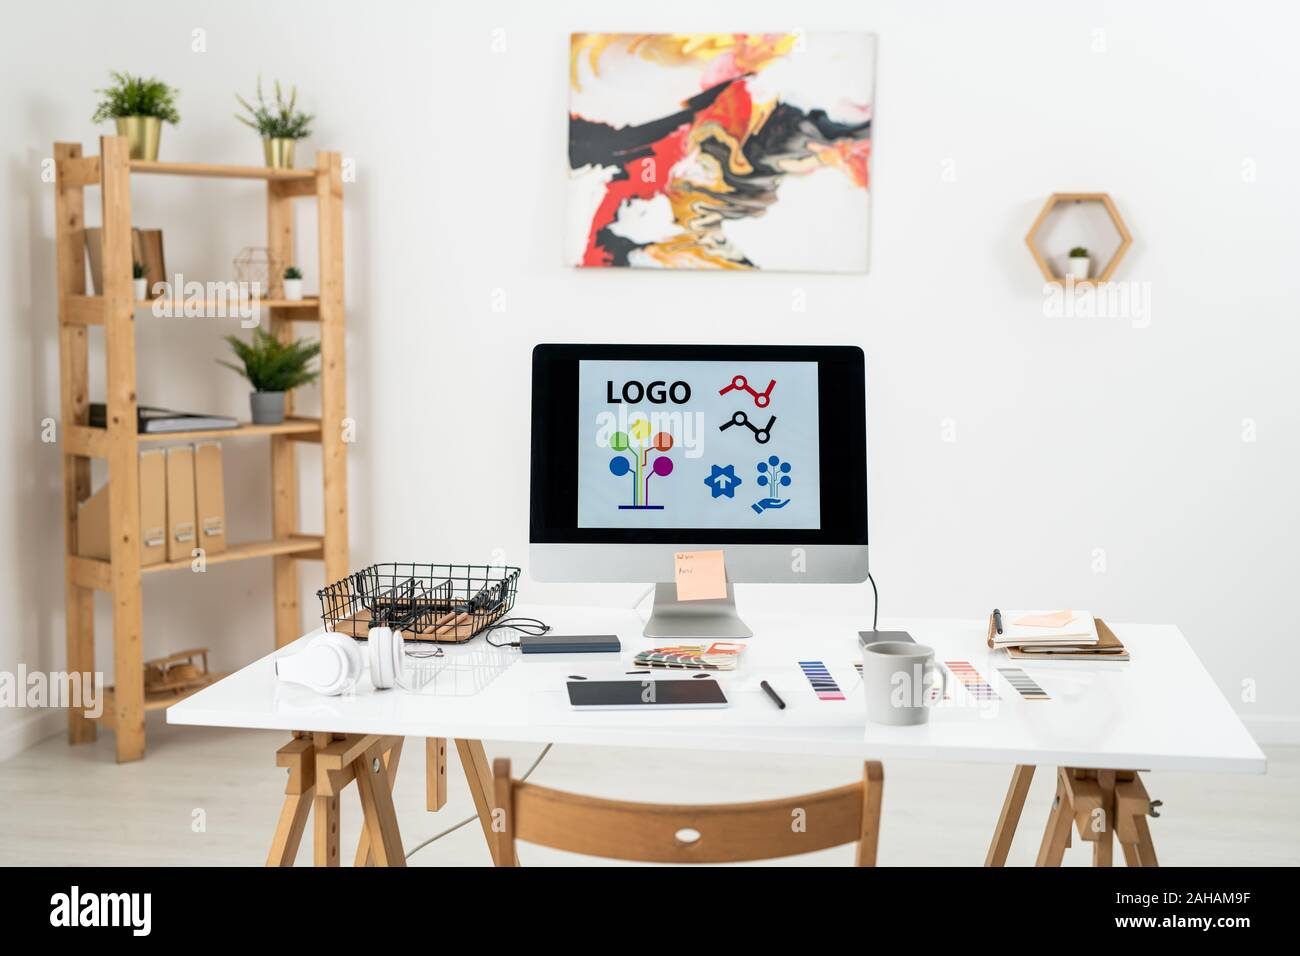 Workplace Of Contemporary Web Designer With Supplies Necessary For Work Stock Photo Alamy